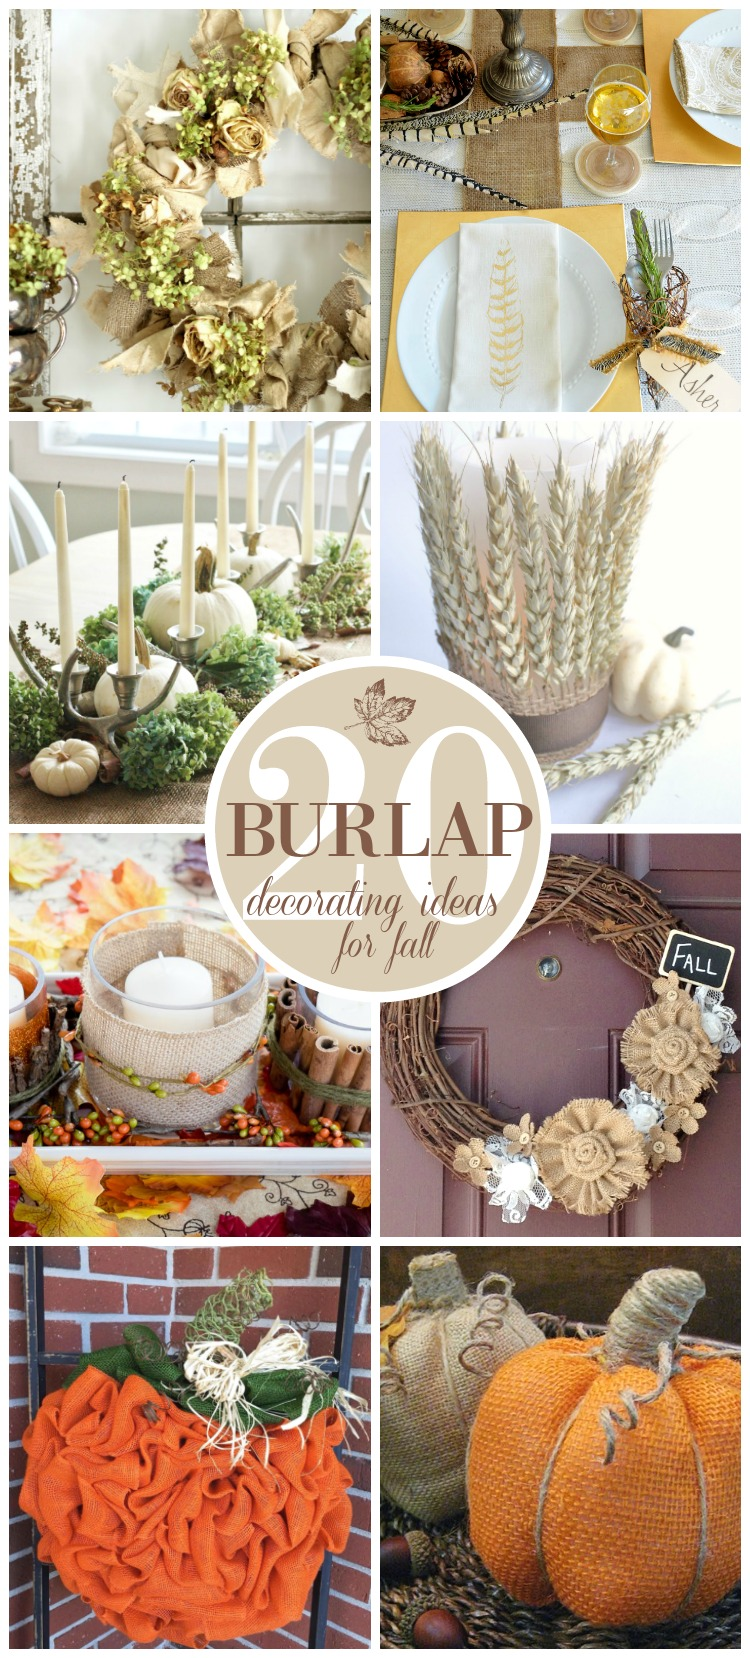 20 burlap decorating ideas for fall - Decorating For Autumn